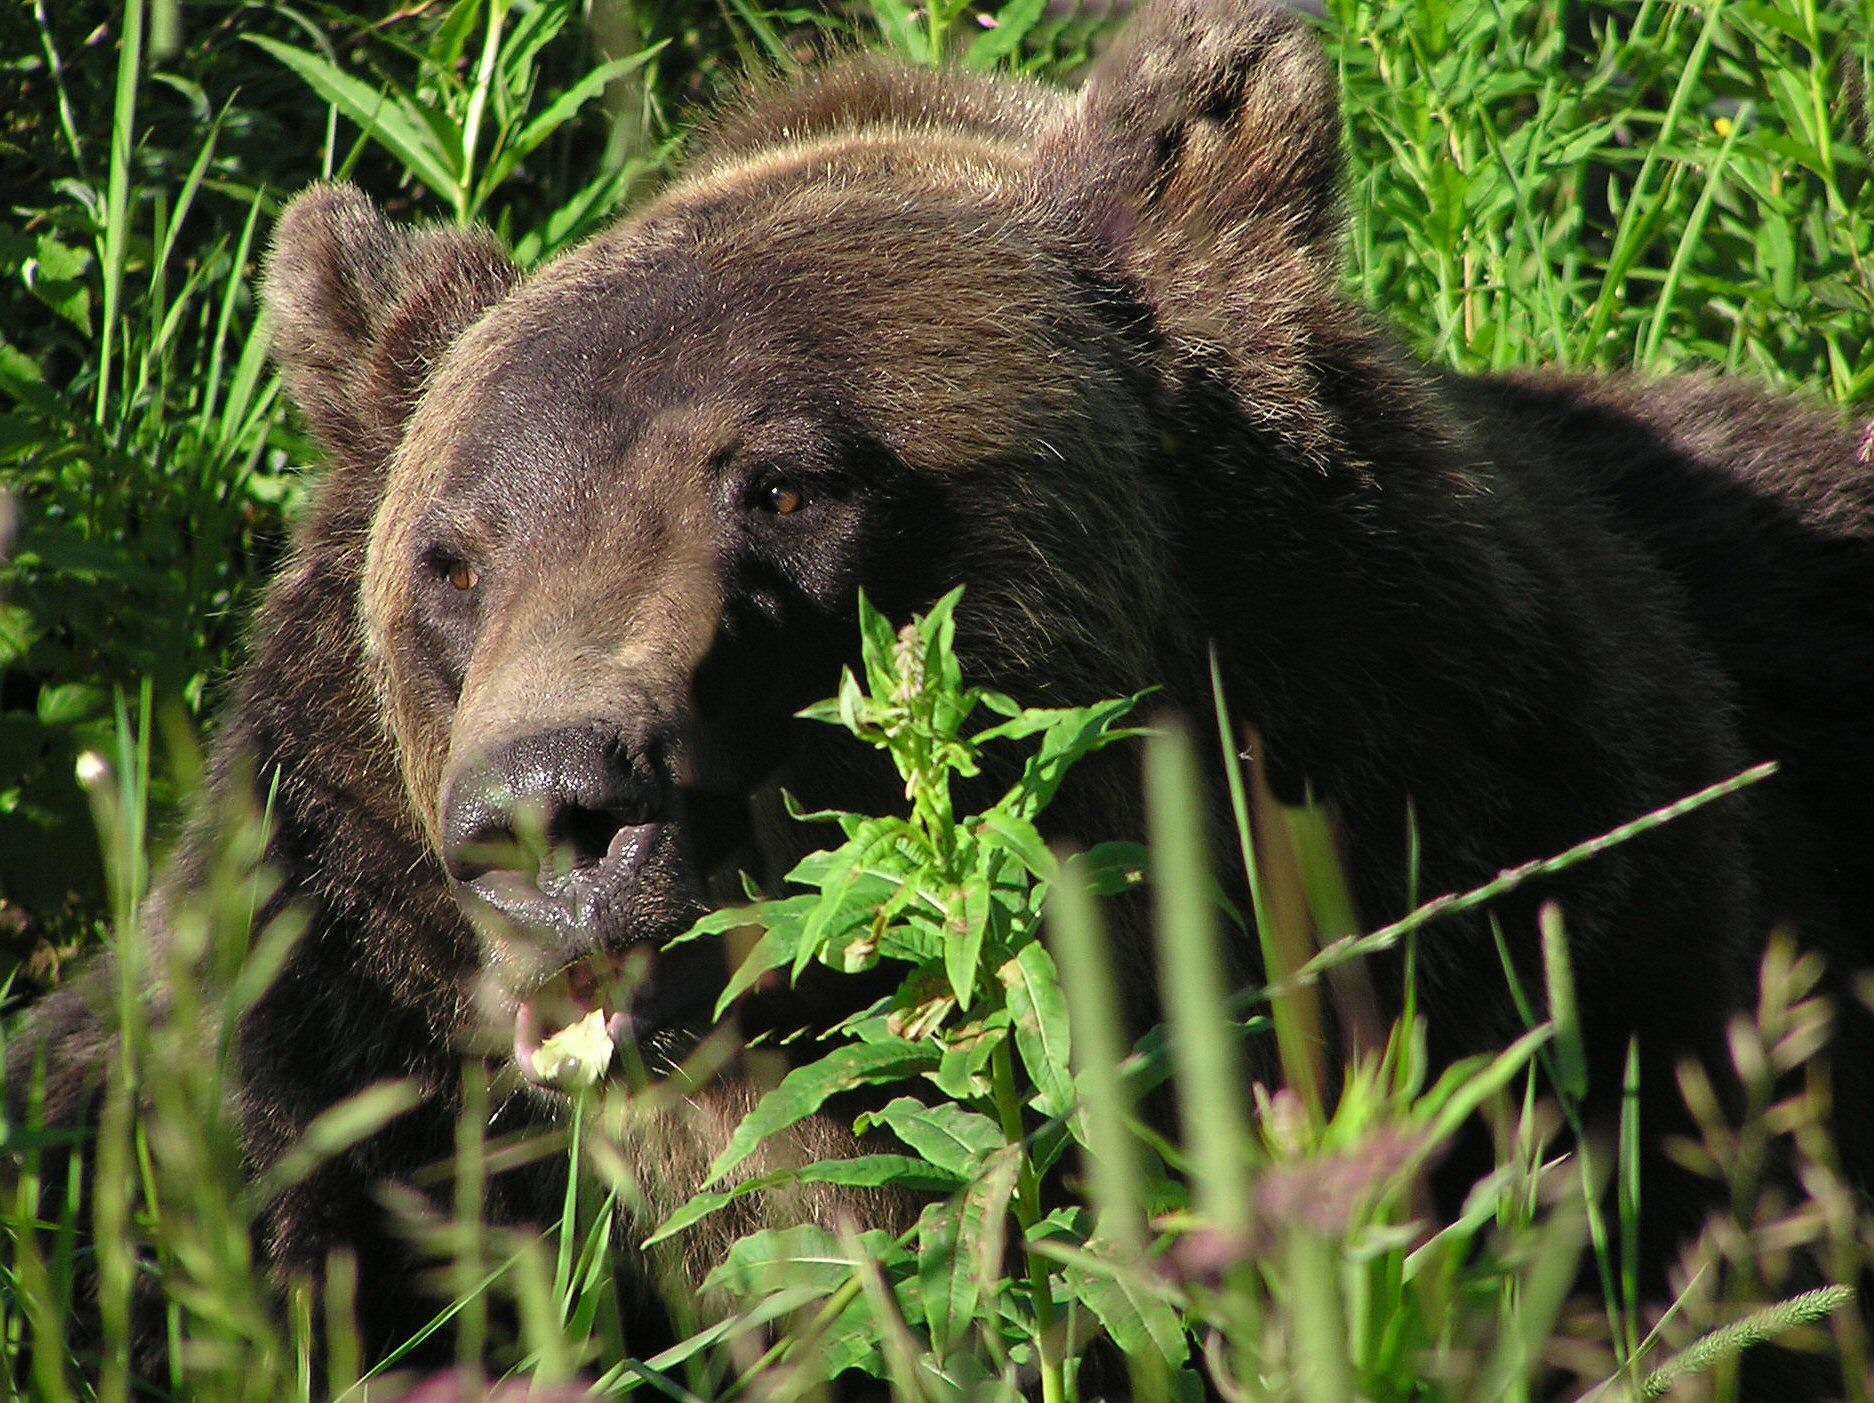 The photographs of brown bear, grizzly bears and black bears for your computer desktop wallpaper were taken with a digital camera